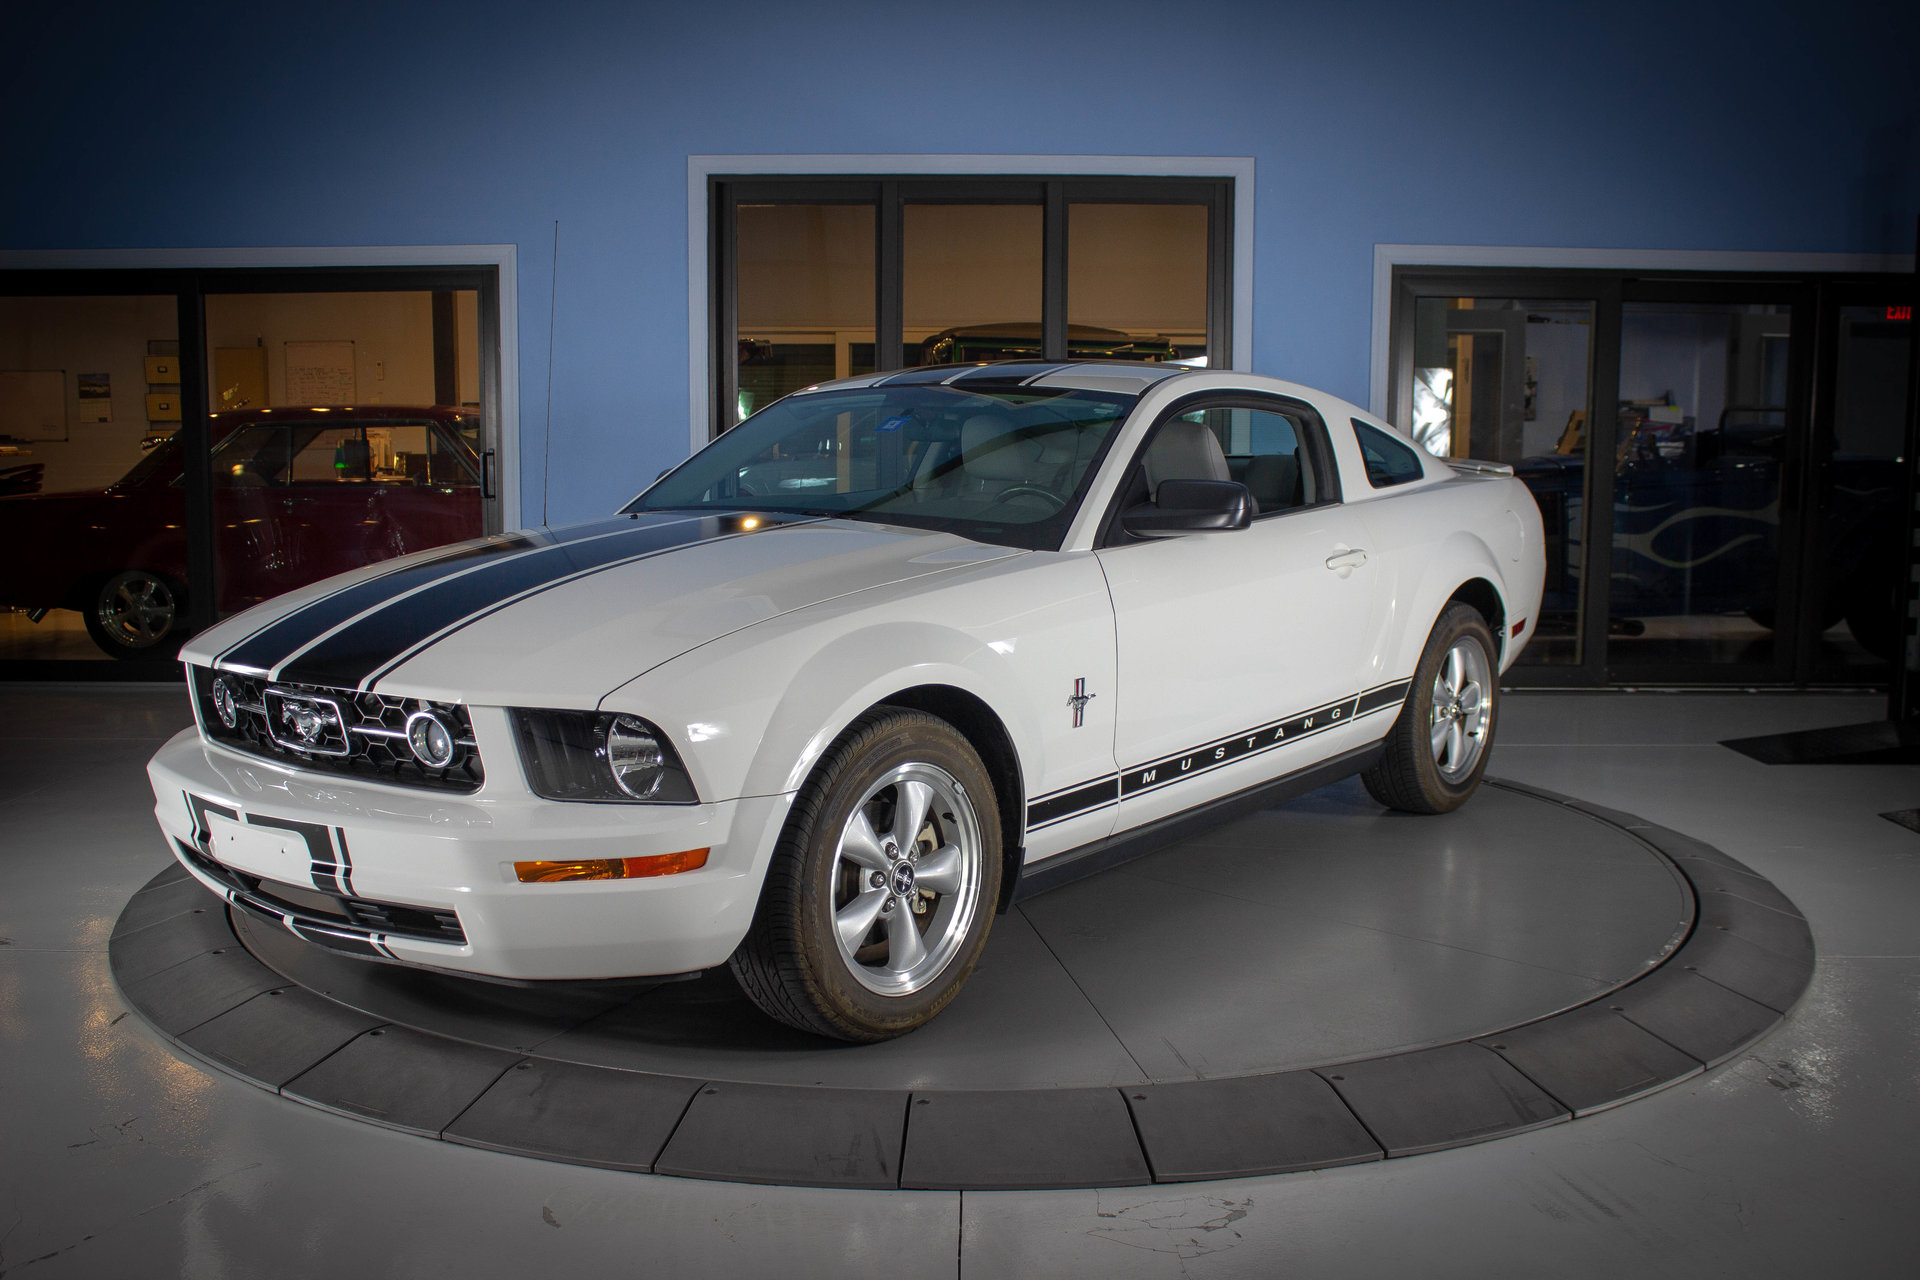 115896aa29698 hd 2007 ford mustang